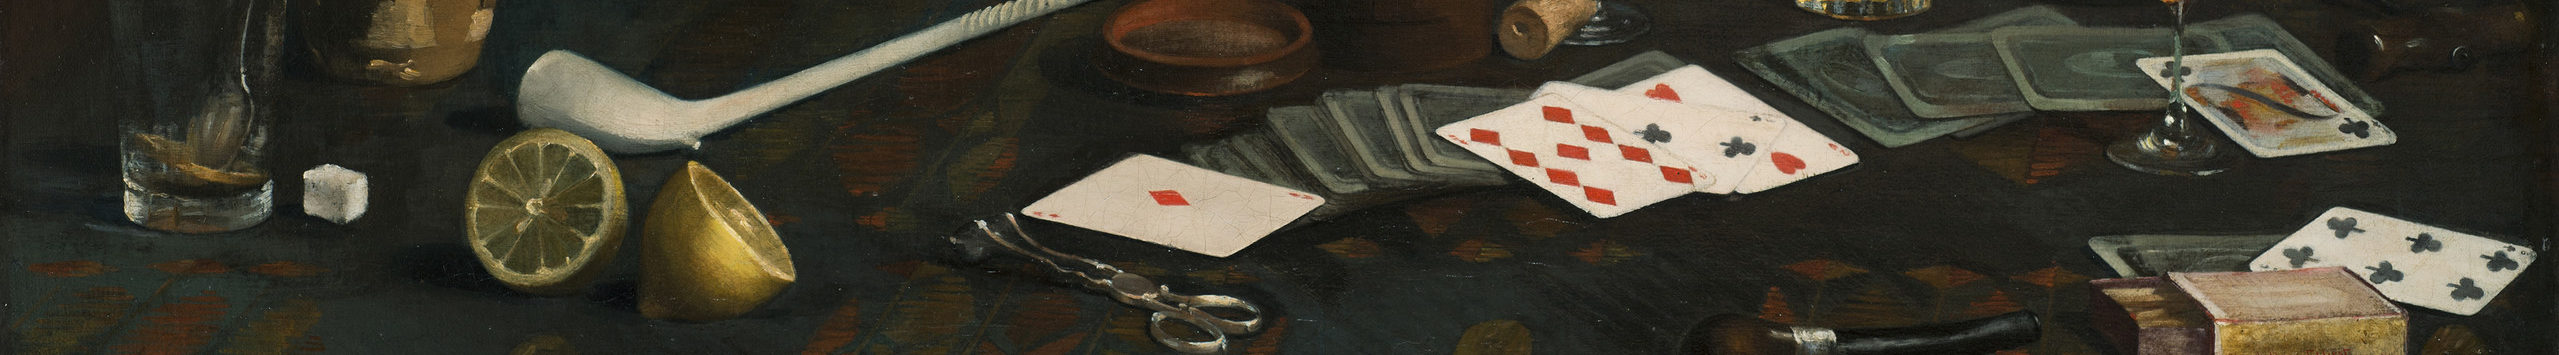 Painting of a blue tablecloth with gold and red pattern. Strewn across the top are half-empty glasses of wine and brown liquid, playing cards, lemon halves and matches. Two pipes, one long and white, one small and dark, lie next to a container of sugar cubes, corks, and bottles.